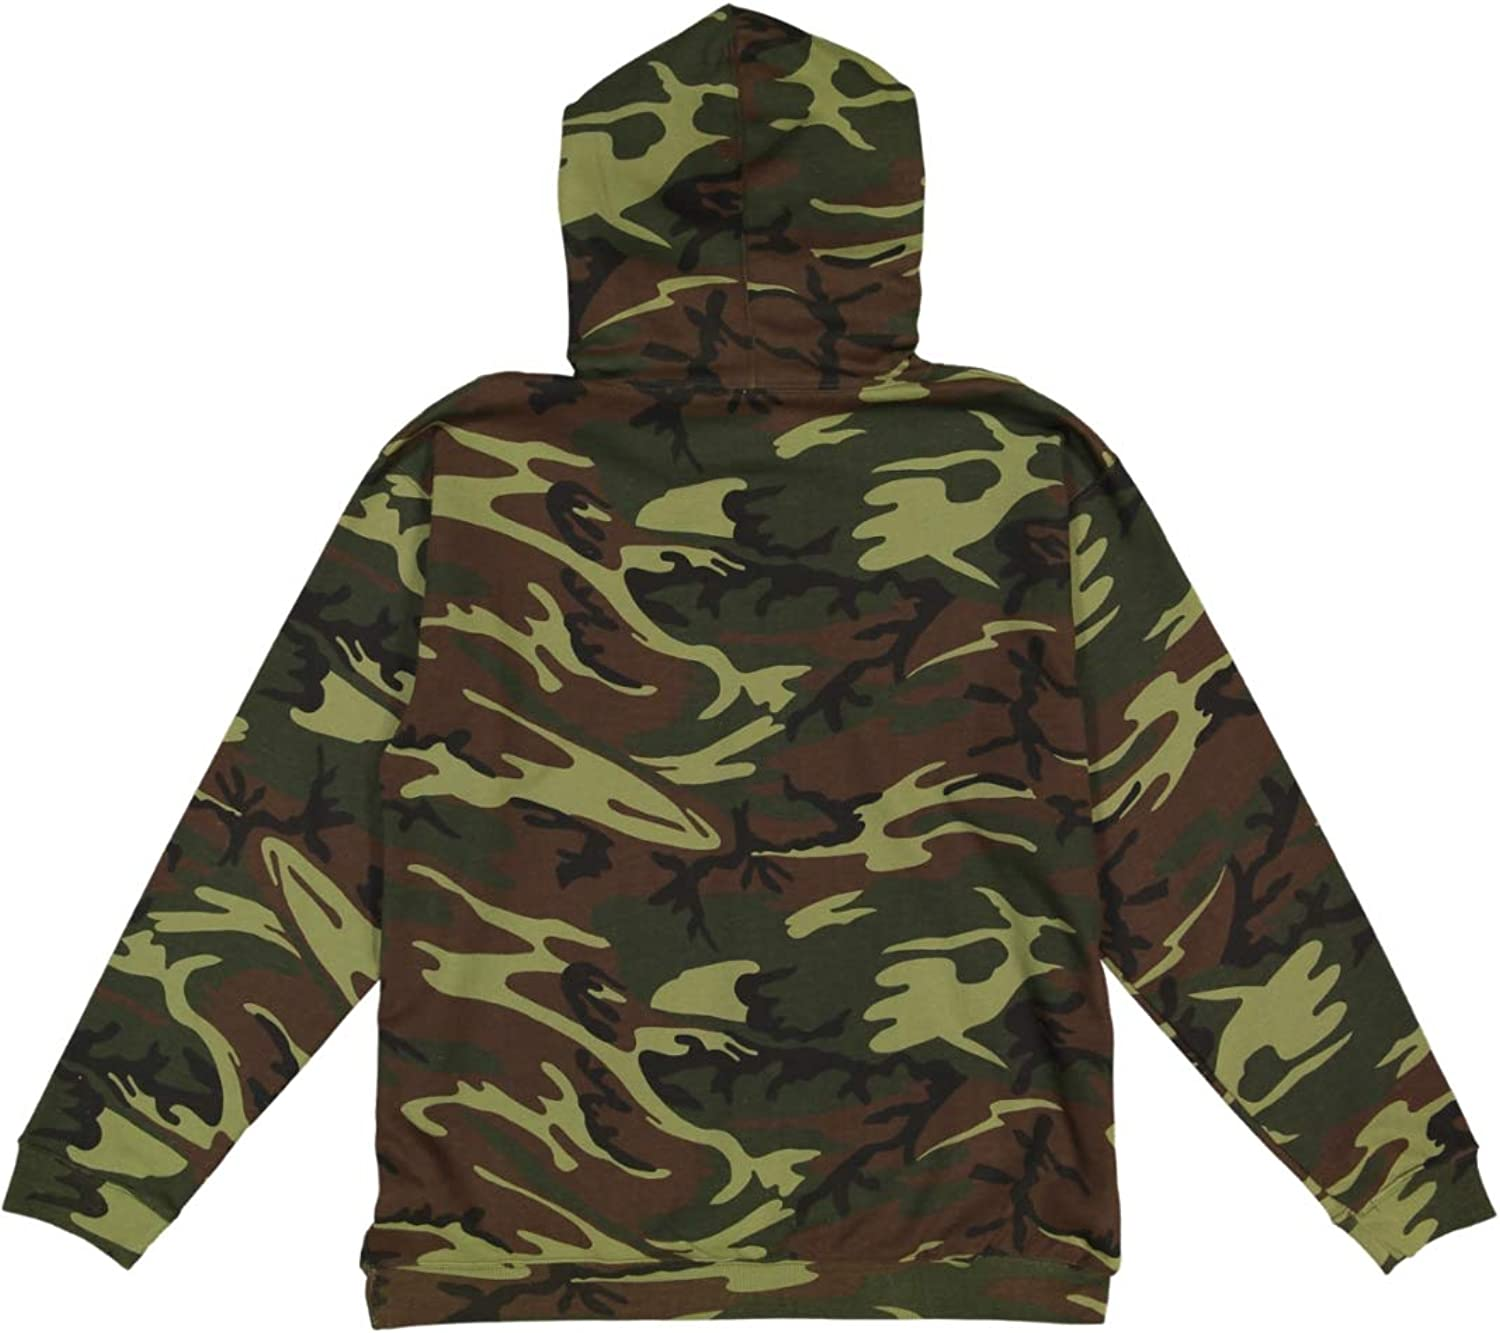 Code Five Mens Camouflage Fleece Long Sleeve Pullover Hooded Sweatshirt with Drawstring